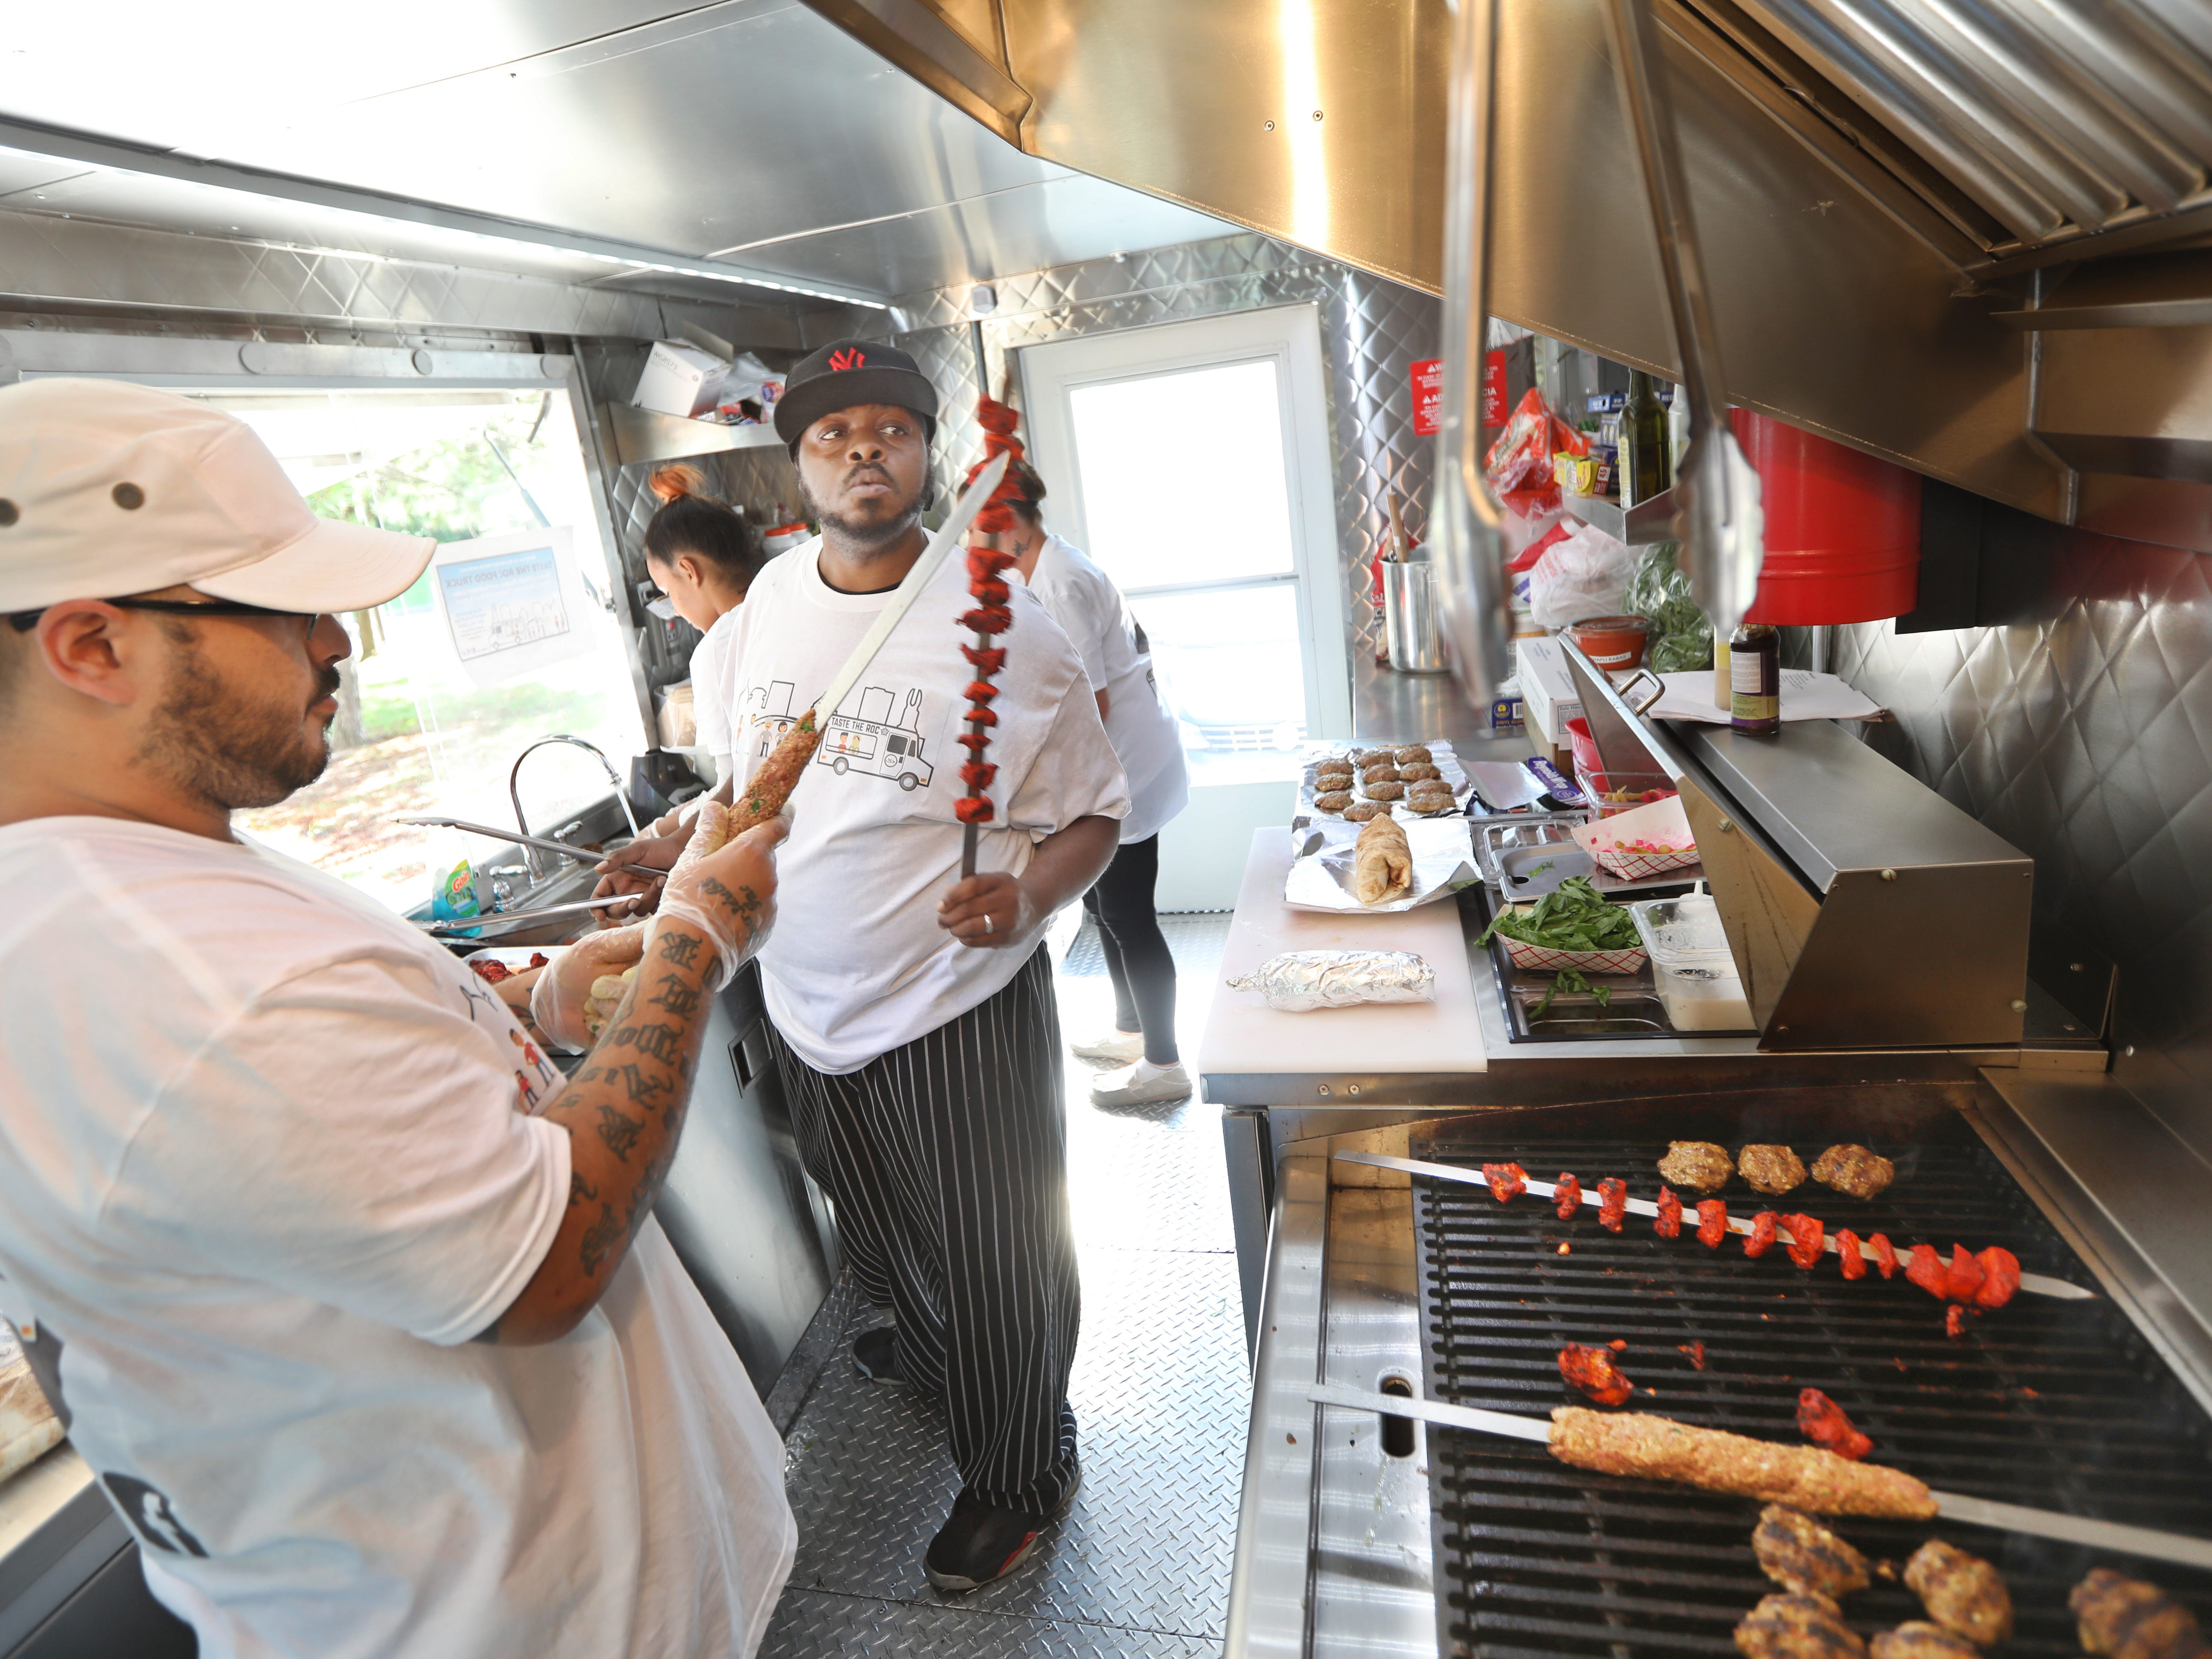 Wilmer King, center, checks a skewer of Tandoori chicken as he takes it off the grill while Raul Ortiz, left, readies a skewer of beef for grilling inside the new Taste the ROC food truck.